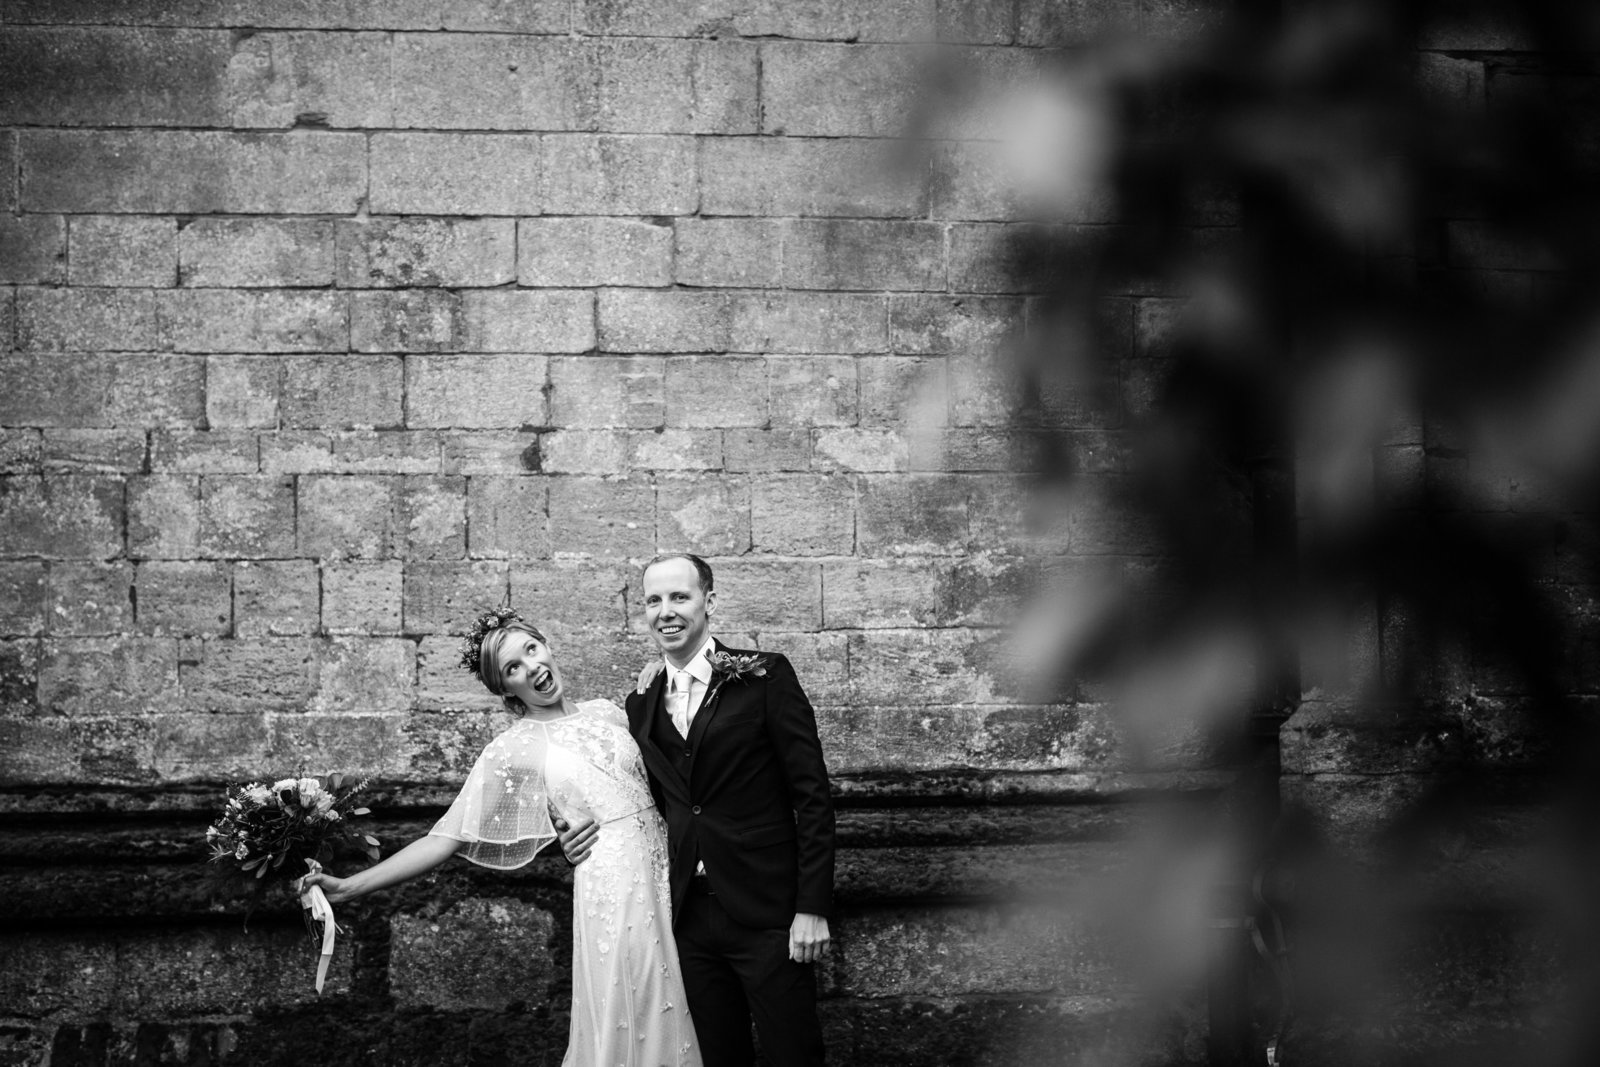 Bride and Groom strike happy pose for their wedding photographer in Bury St Edmunds, Suffolk.